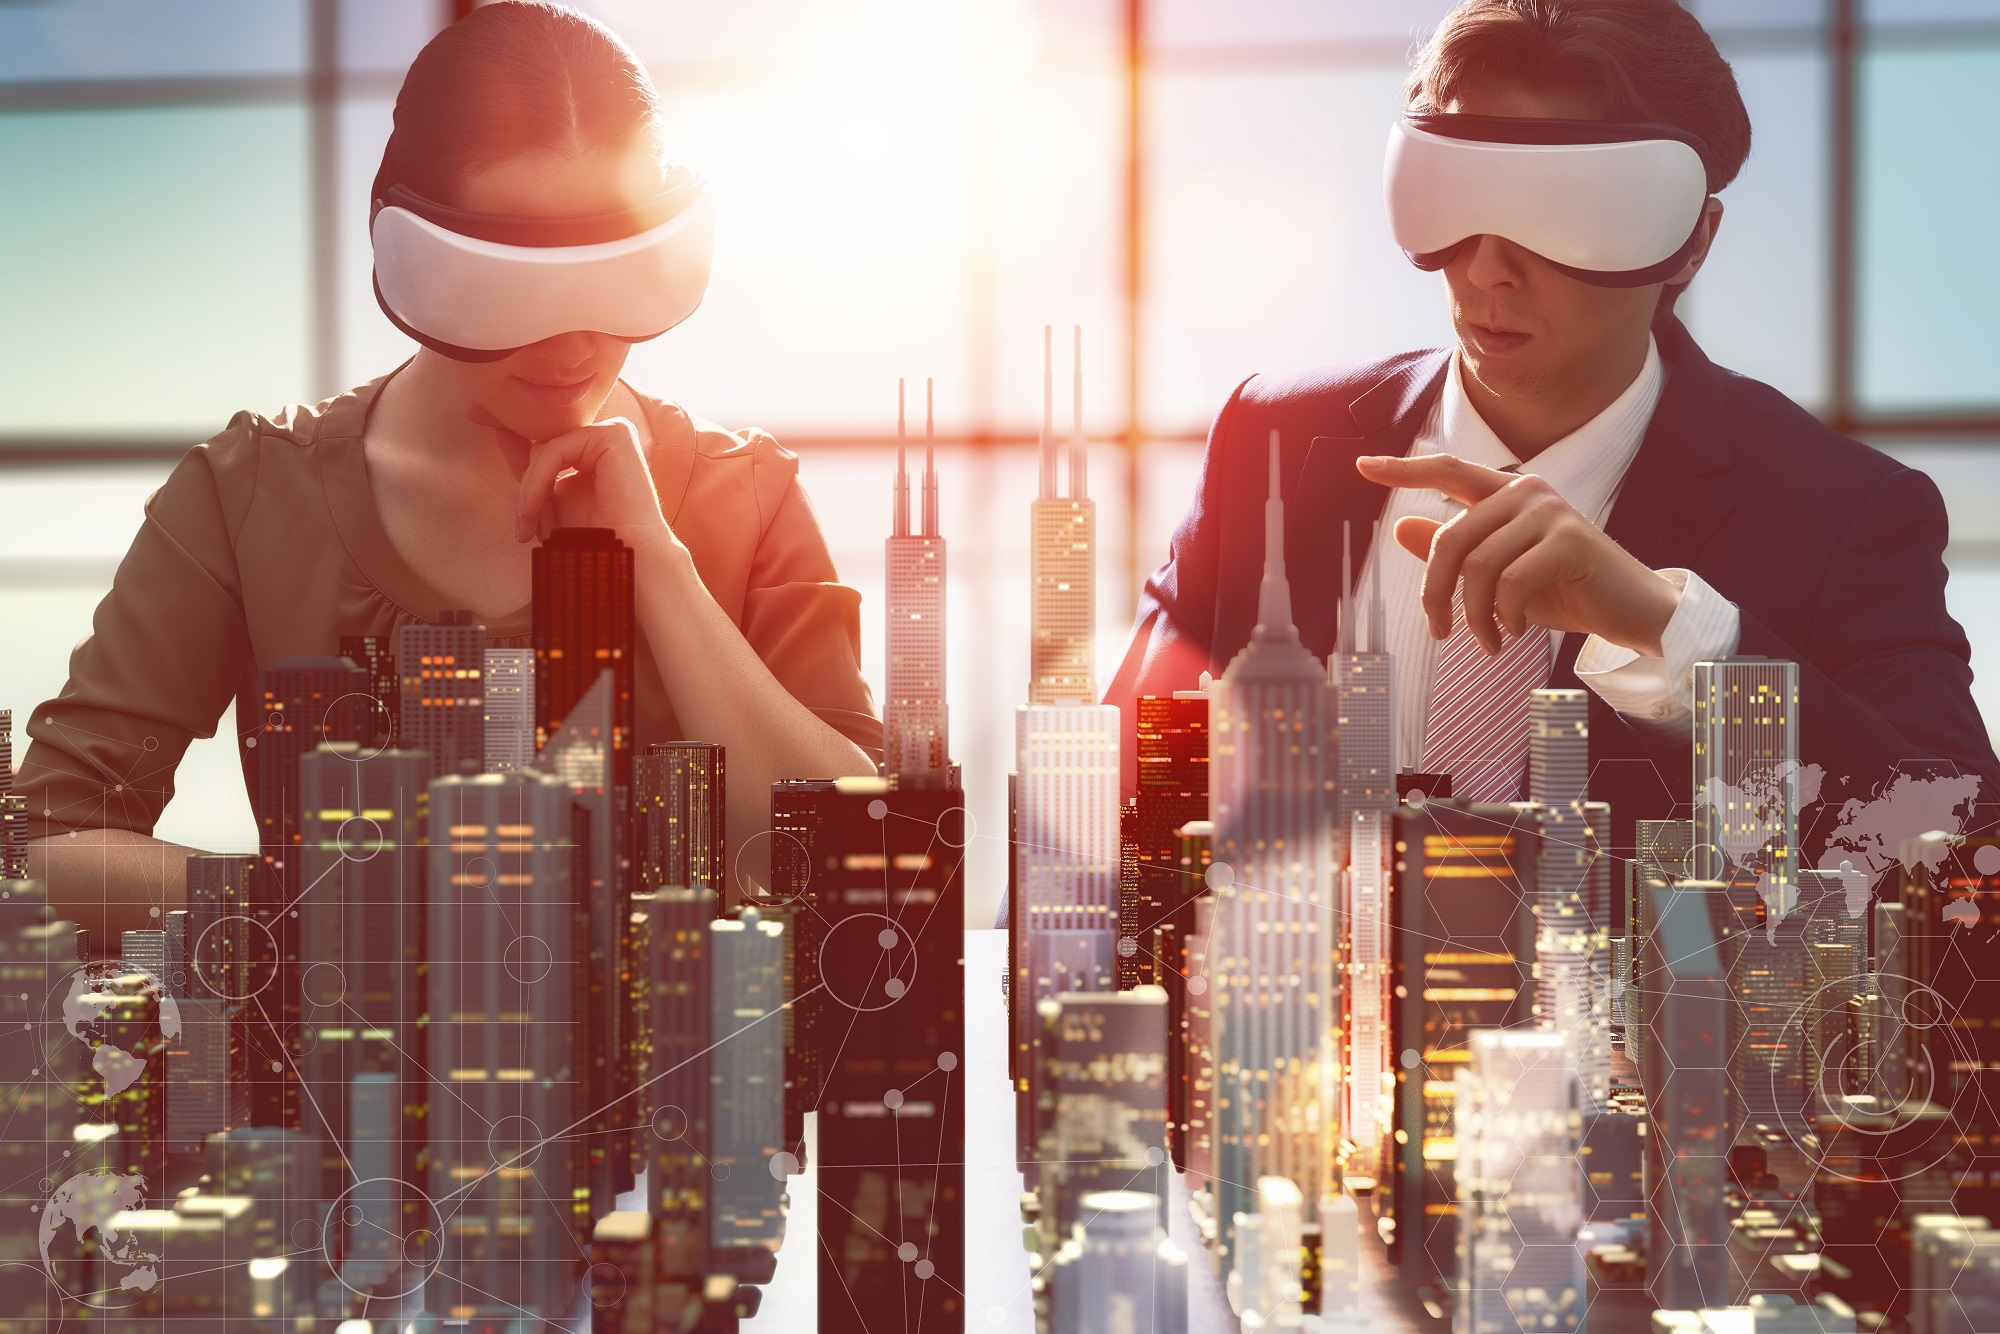 While virtual reality technology already has clear applications in the entertainment industry, it can also aid in leadership development as Dr Richard Carter explains.